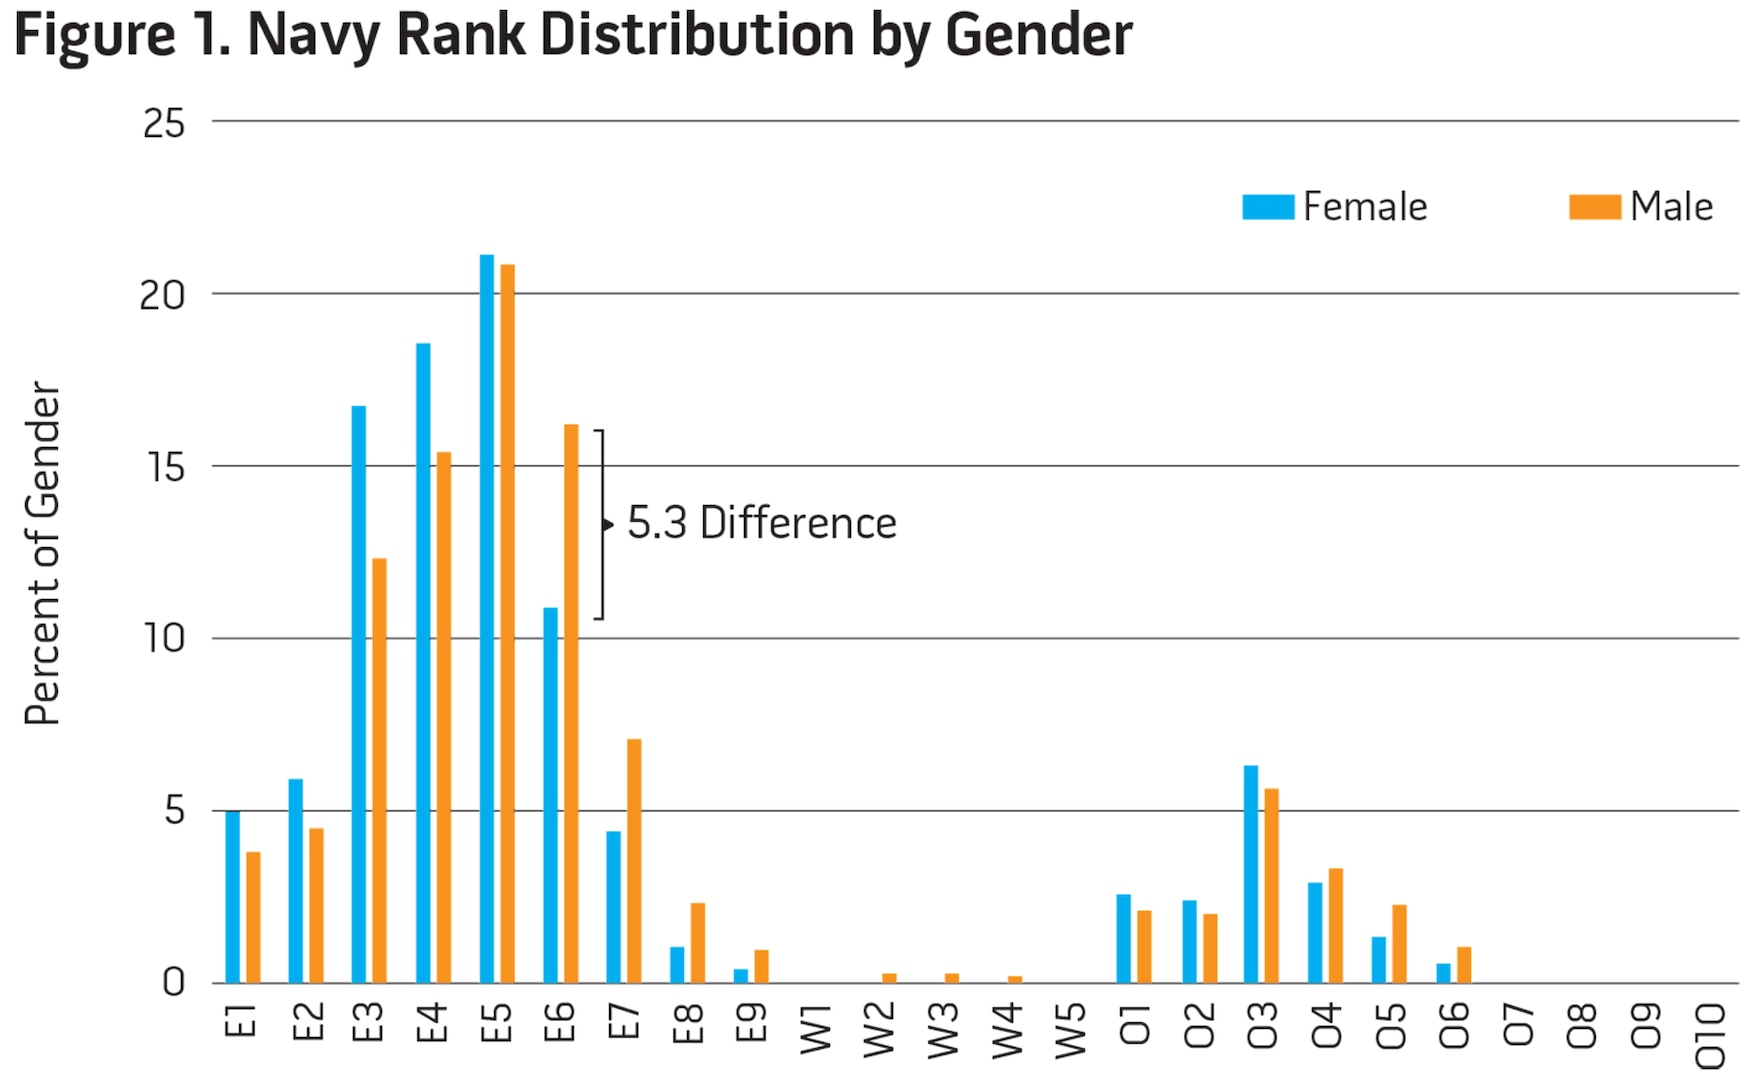 Figure 1. Navy Rank Distribution by Gender